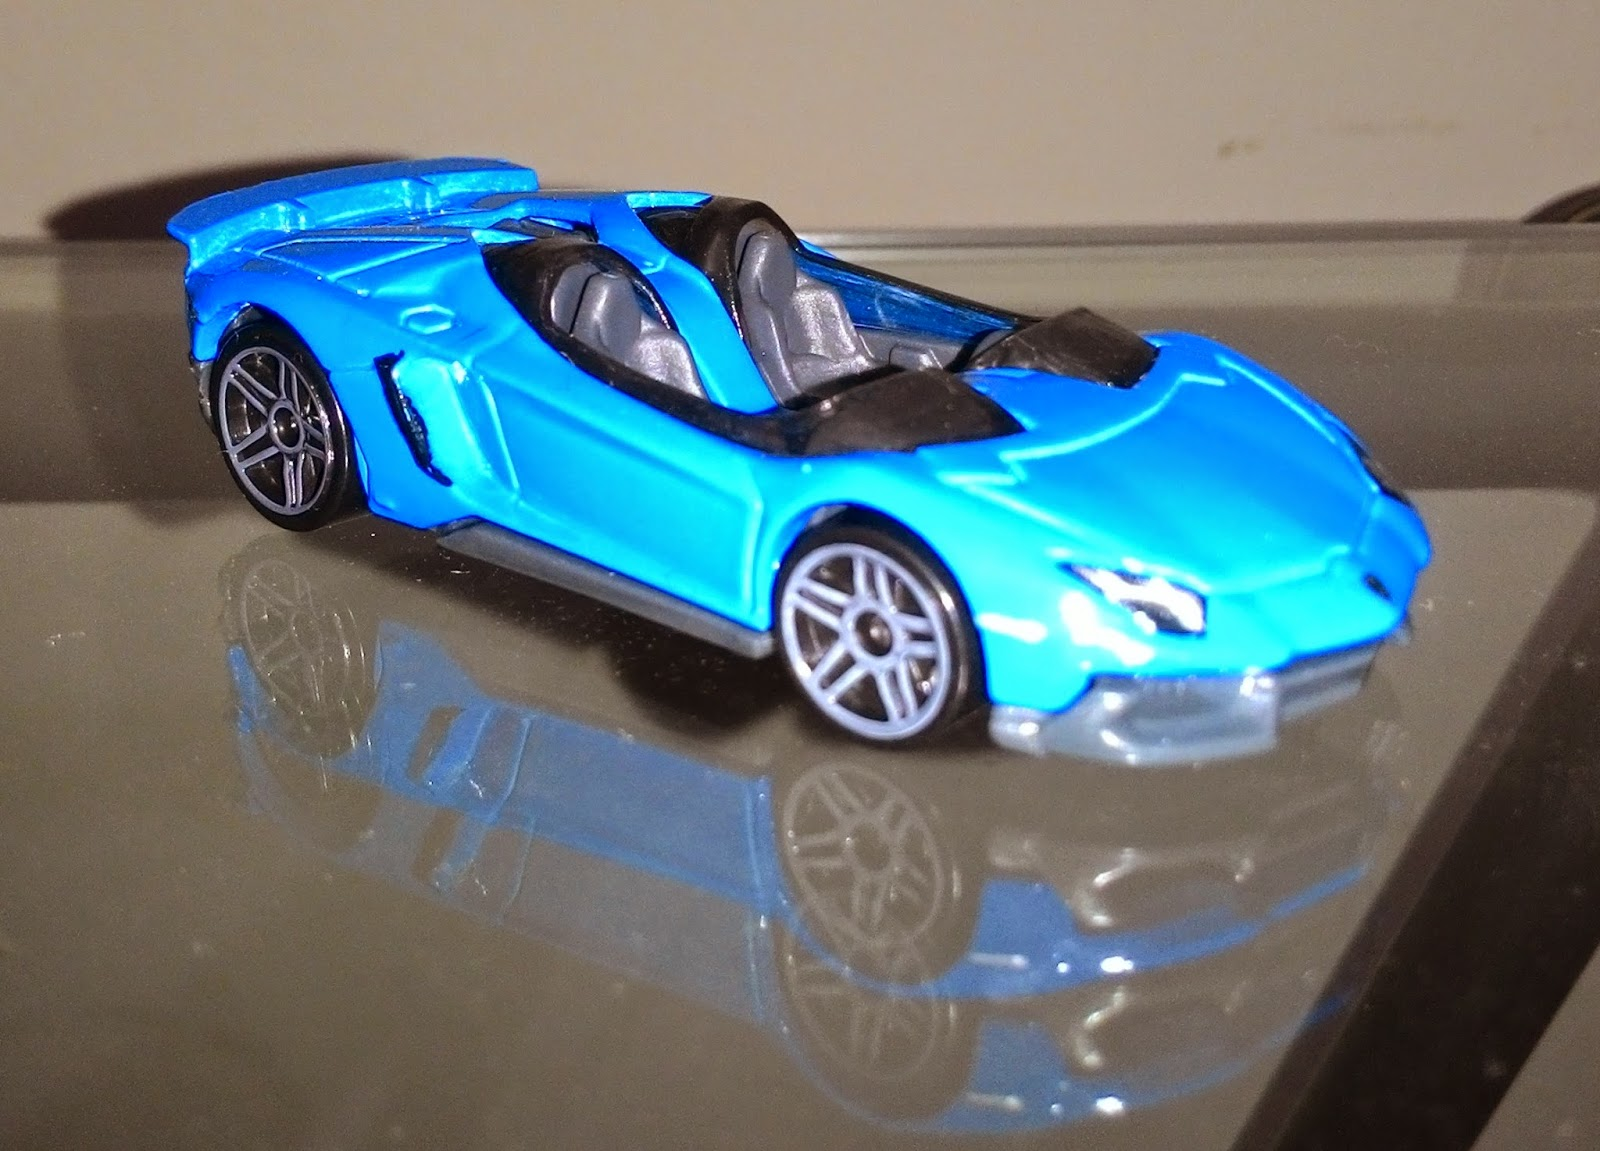 its lamborghini aventador j i have two color of them blue and yellow they are part of 2014 hw workshop ive got them in a little toy store